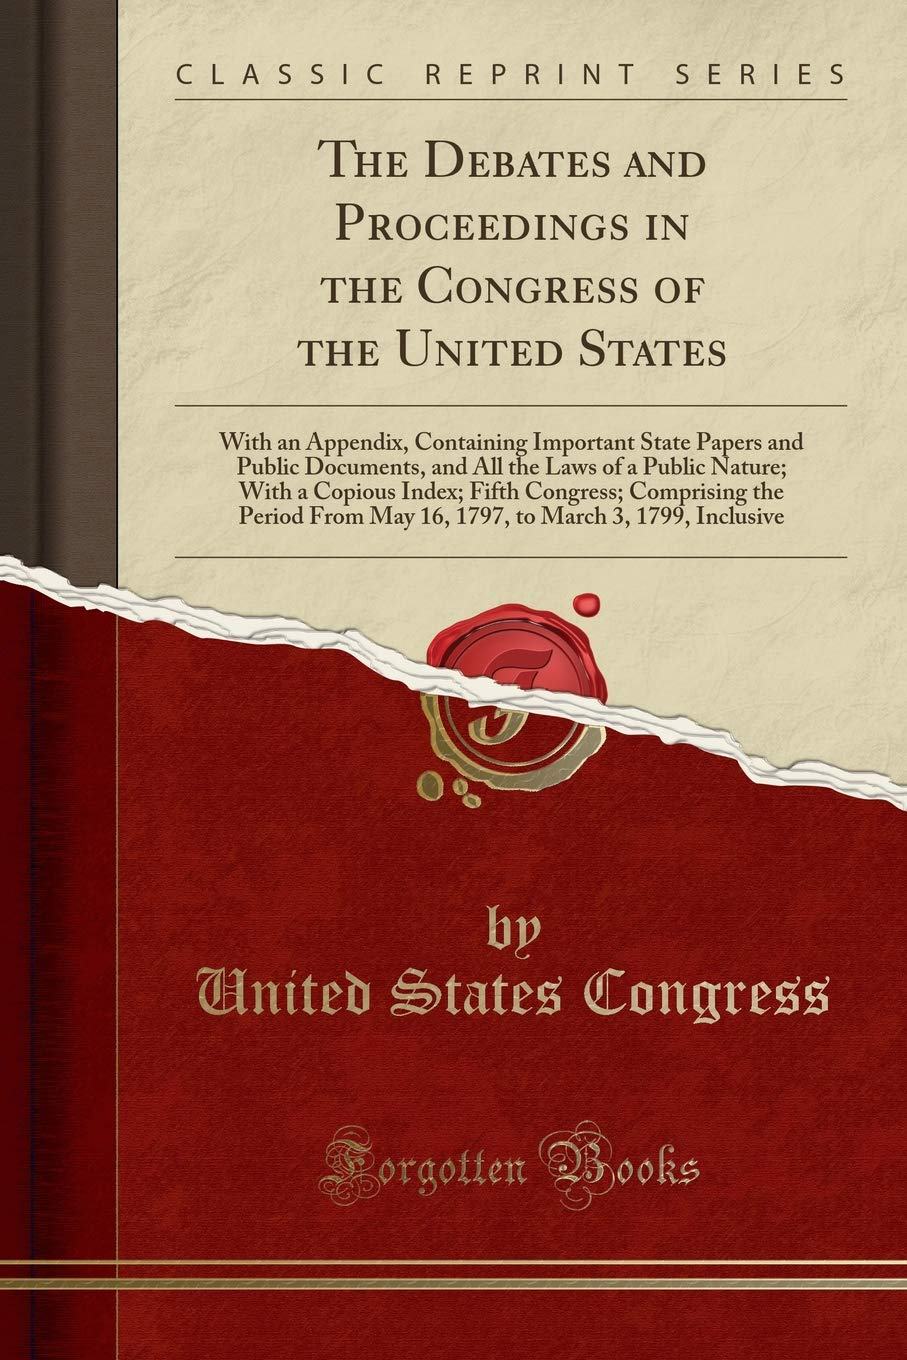 Download The Debates and Proceedings in the Congress of the United States: With an Appendix, Containing Important State Papers and Public Documents, and All ... Comprising the Period From May 16, 1797, pdf epub